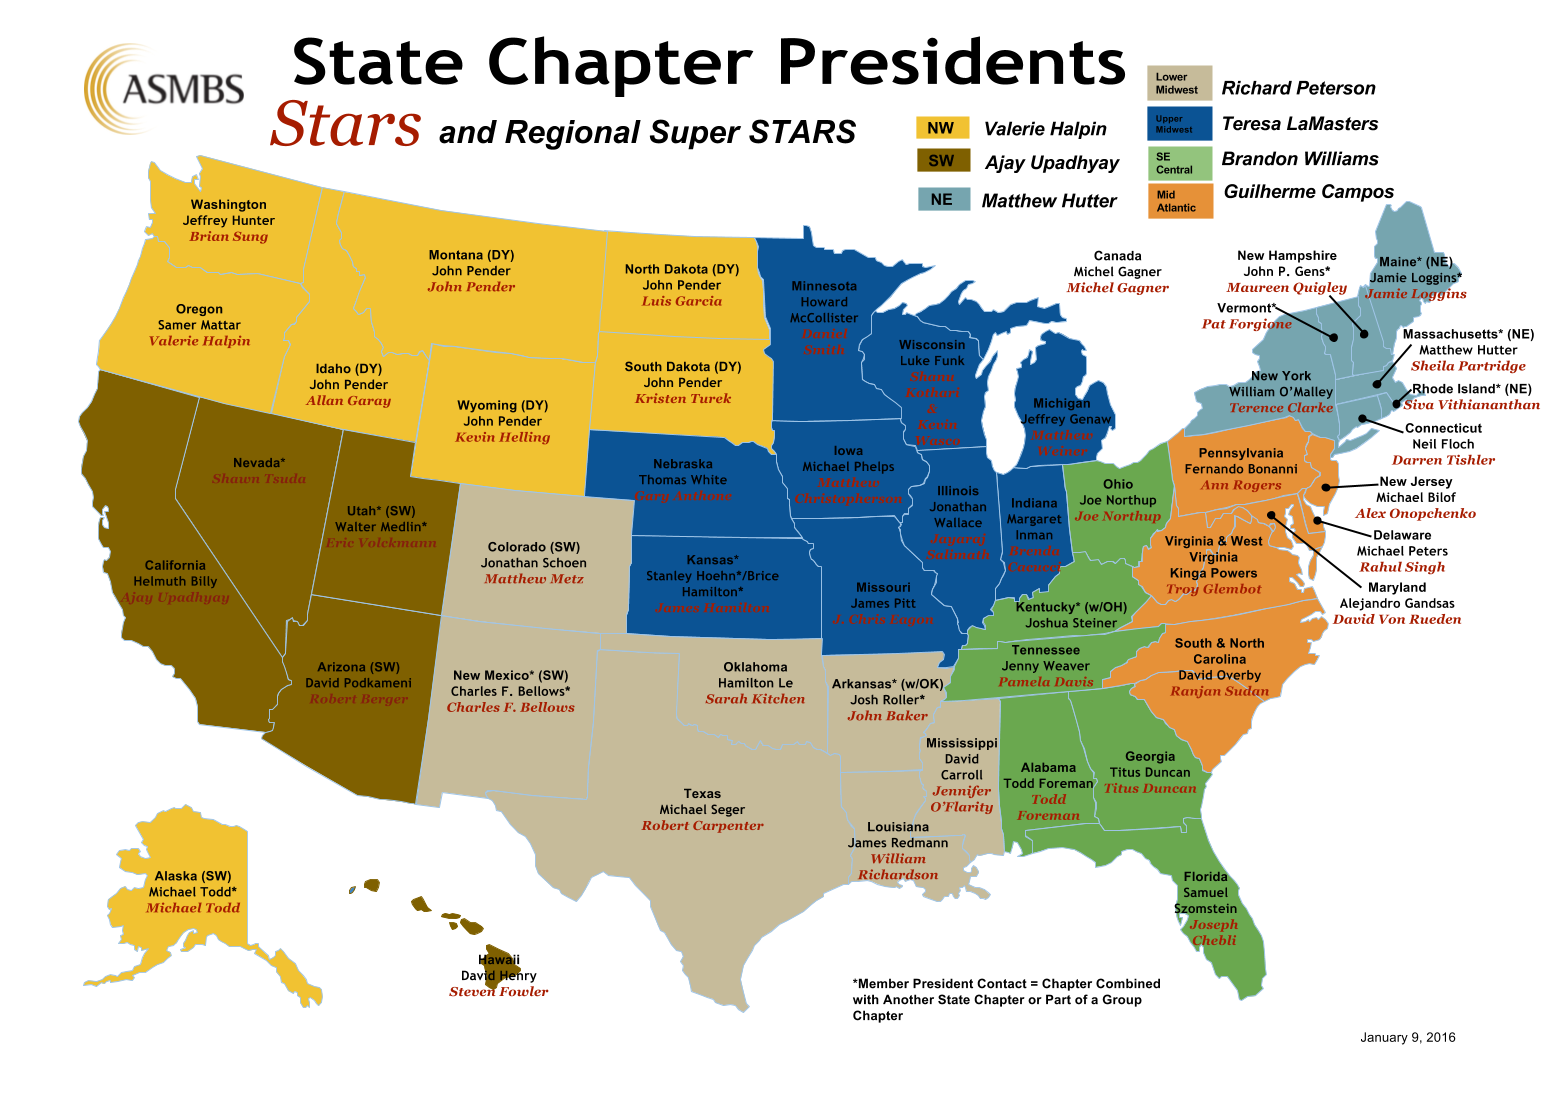 State-Chapter-President-and-Star-Map-010917.png""